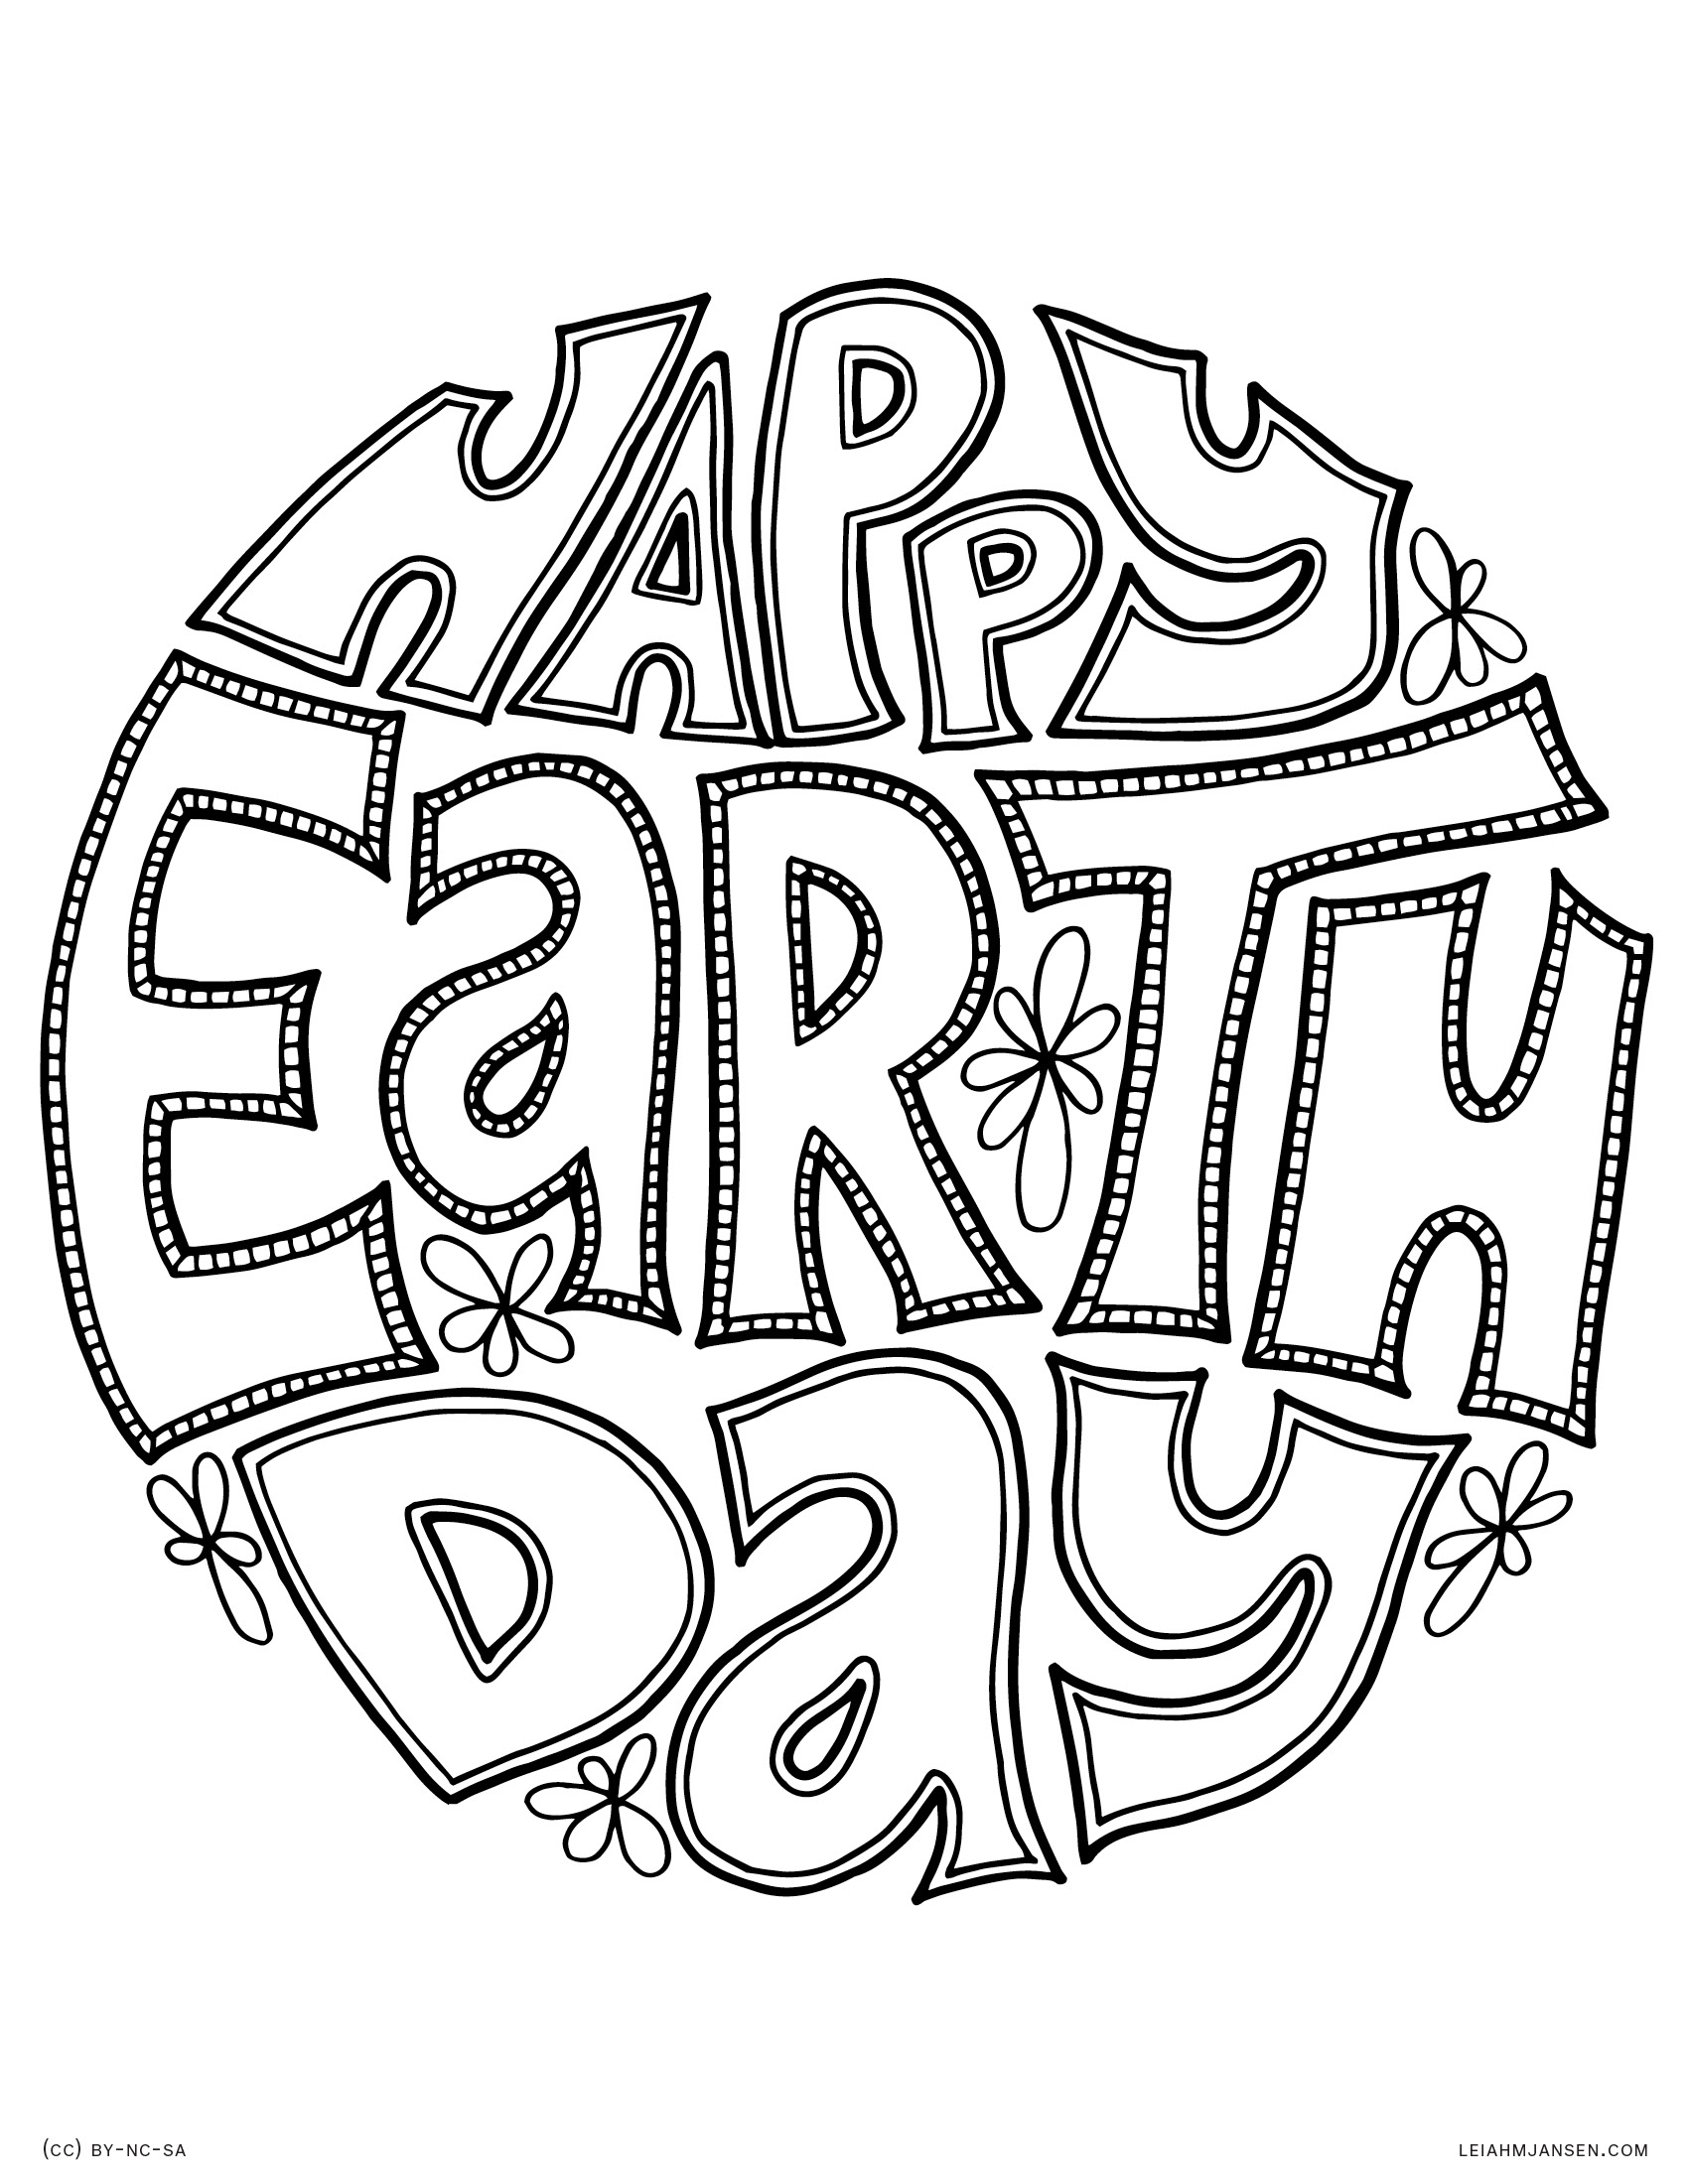 Earth day coloring pages clipart svg royalty free download The BEST Earth Day Coloring Pages svg royalty free download